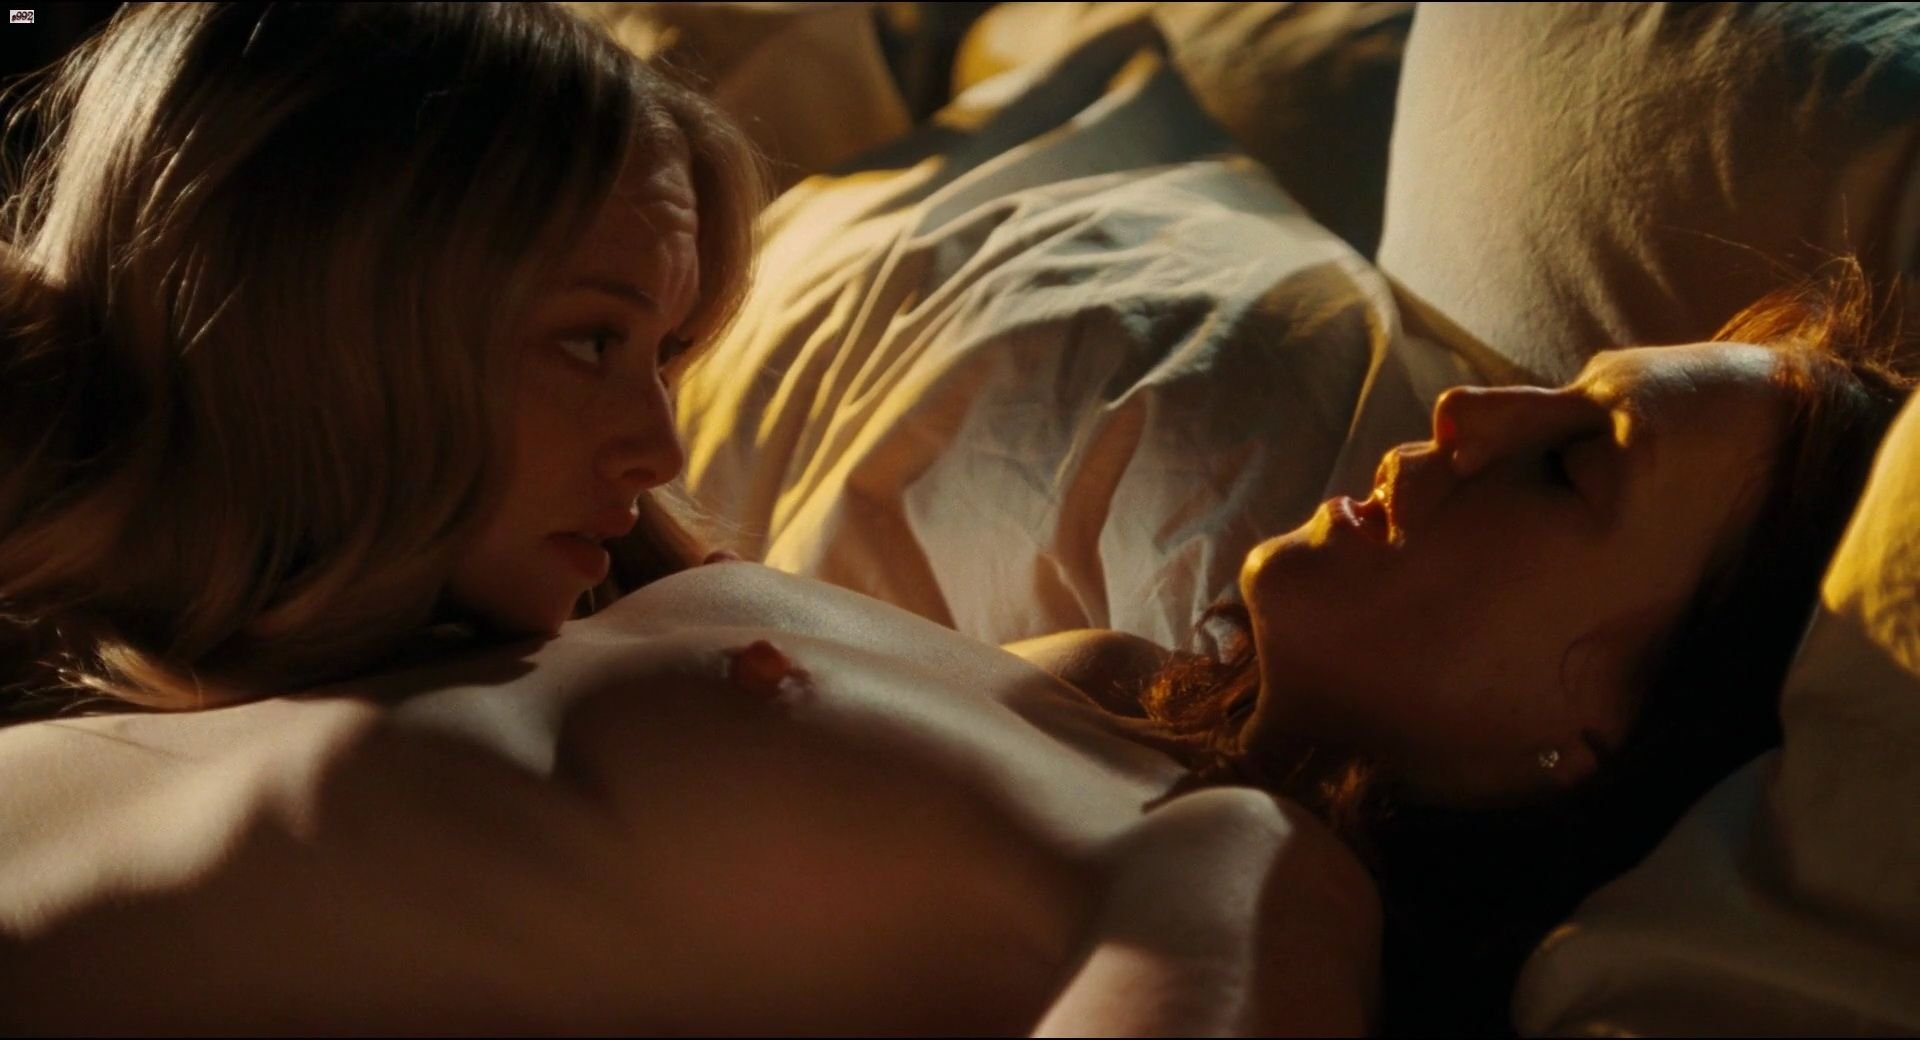 Amanda seyfried and julianne moore sex 2